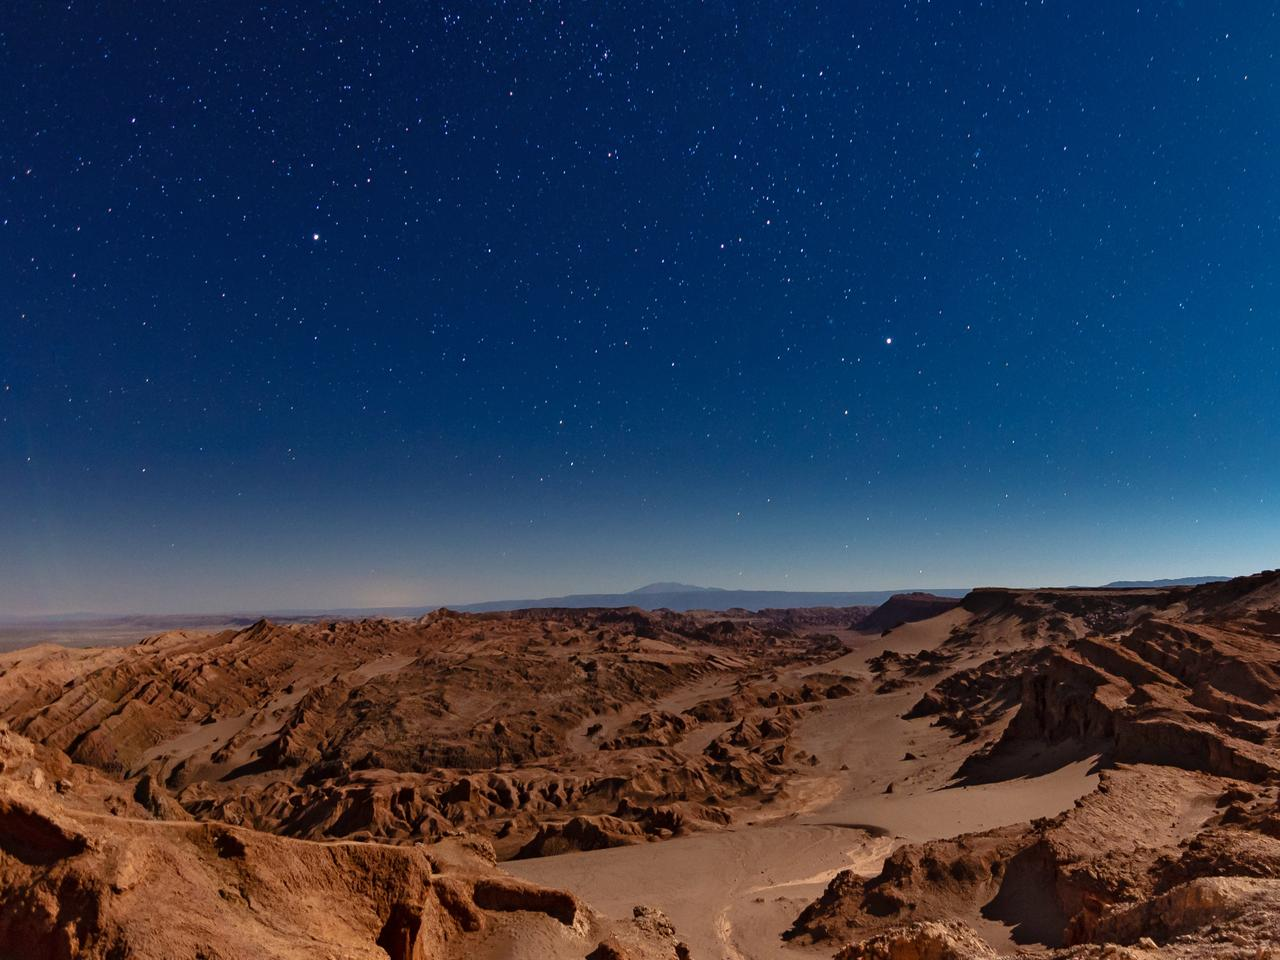 Moon Valley with the stars night